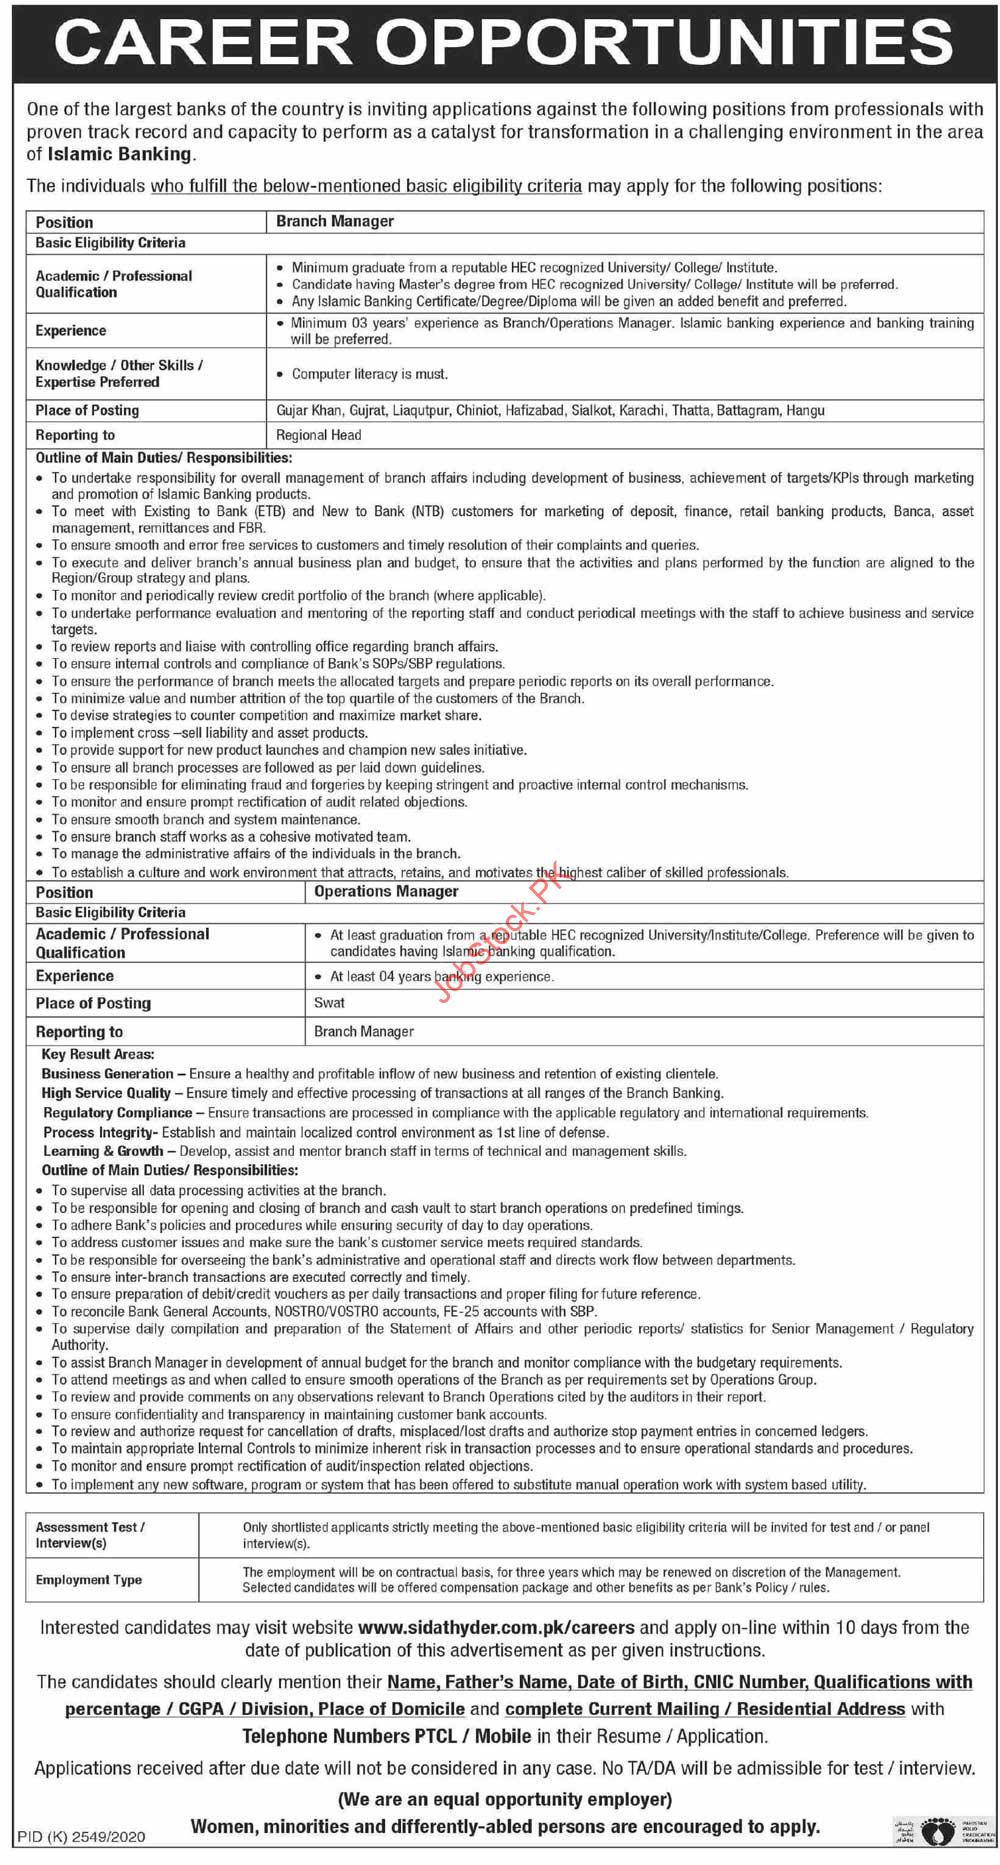 Bank Manager Jobs In Karachi Brach Manager, Operations Manager